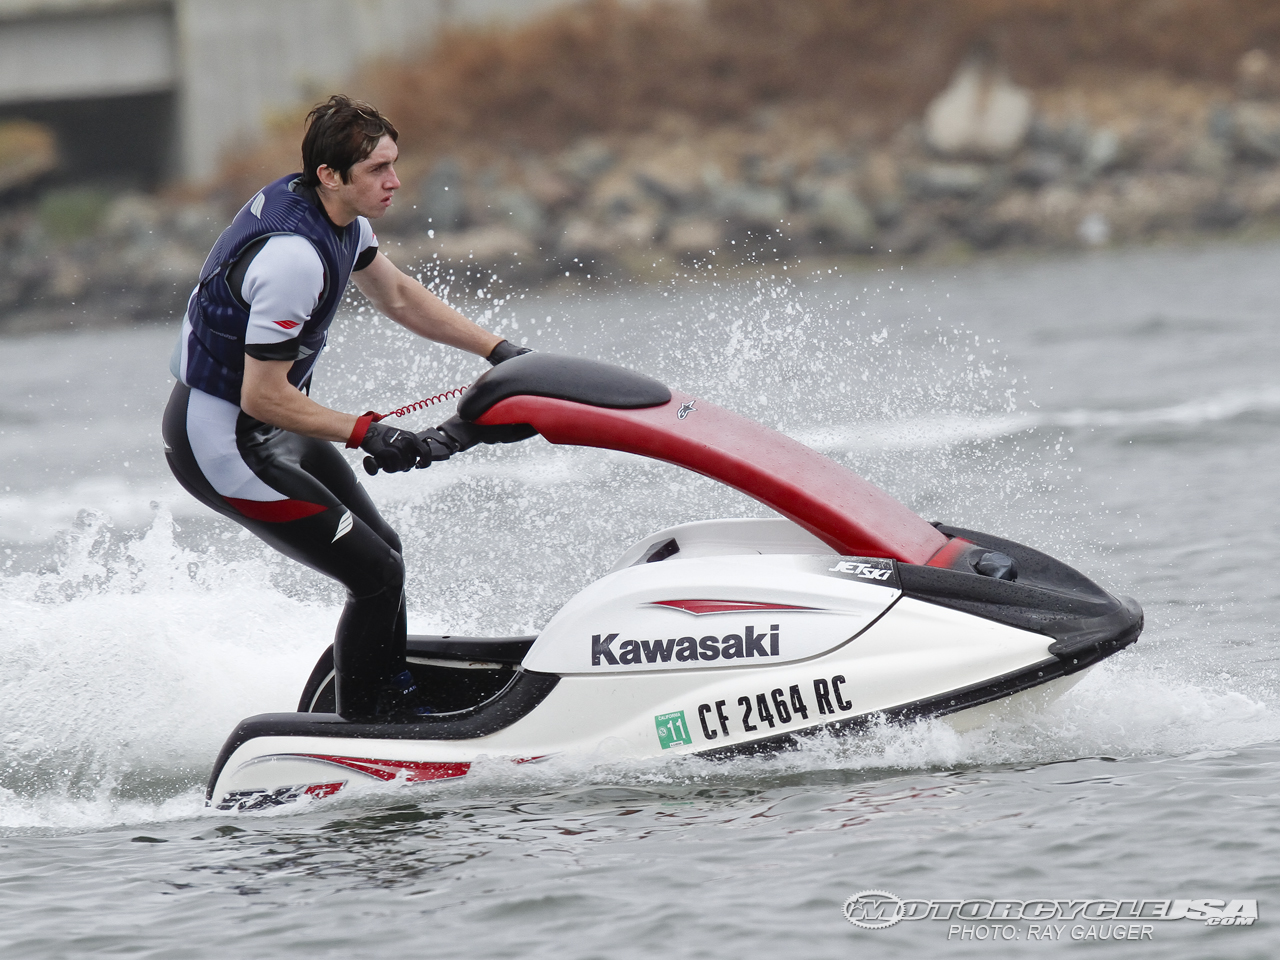 How To Buy A Jet Ski The Ultimate Guide Solved Used